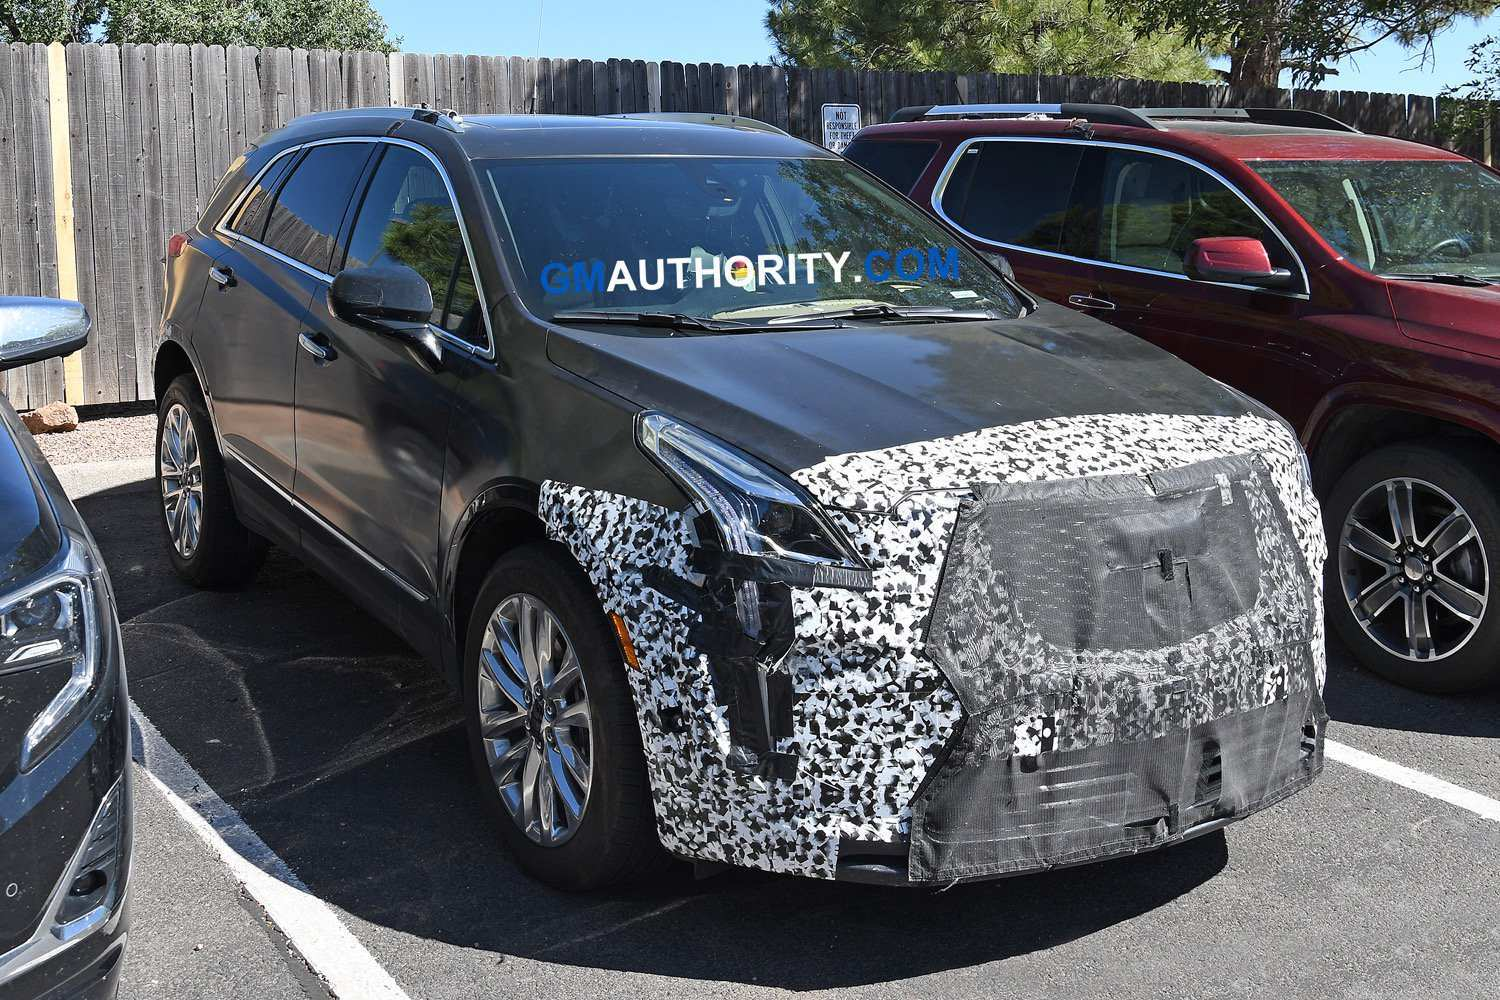 76 Concept of Spy Shots Cadillac Xt5 New Concept for Spy Shots Cadillac Xt5